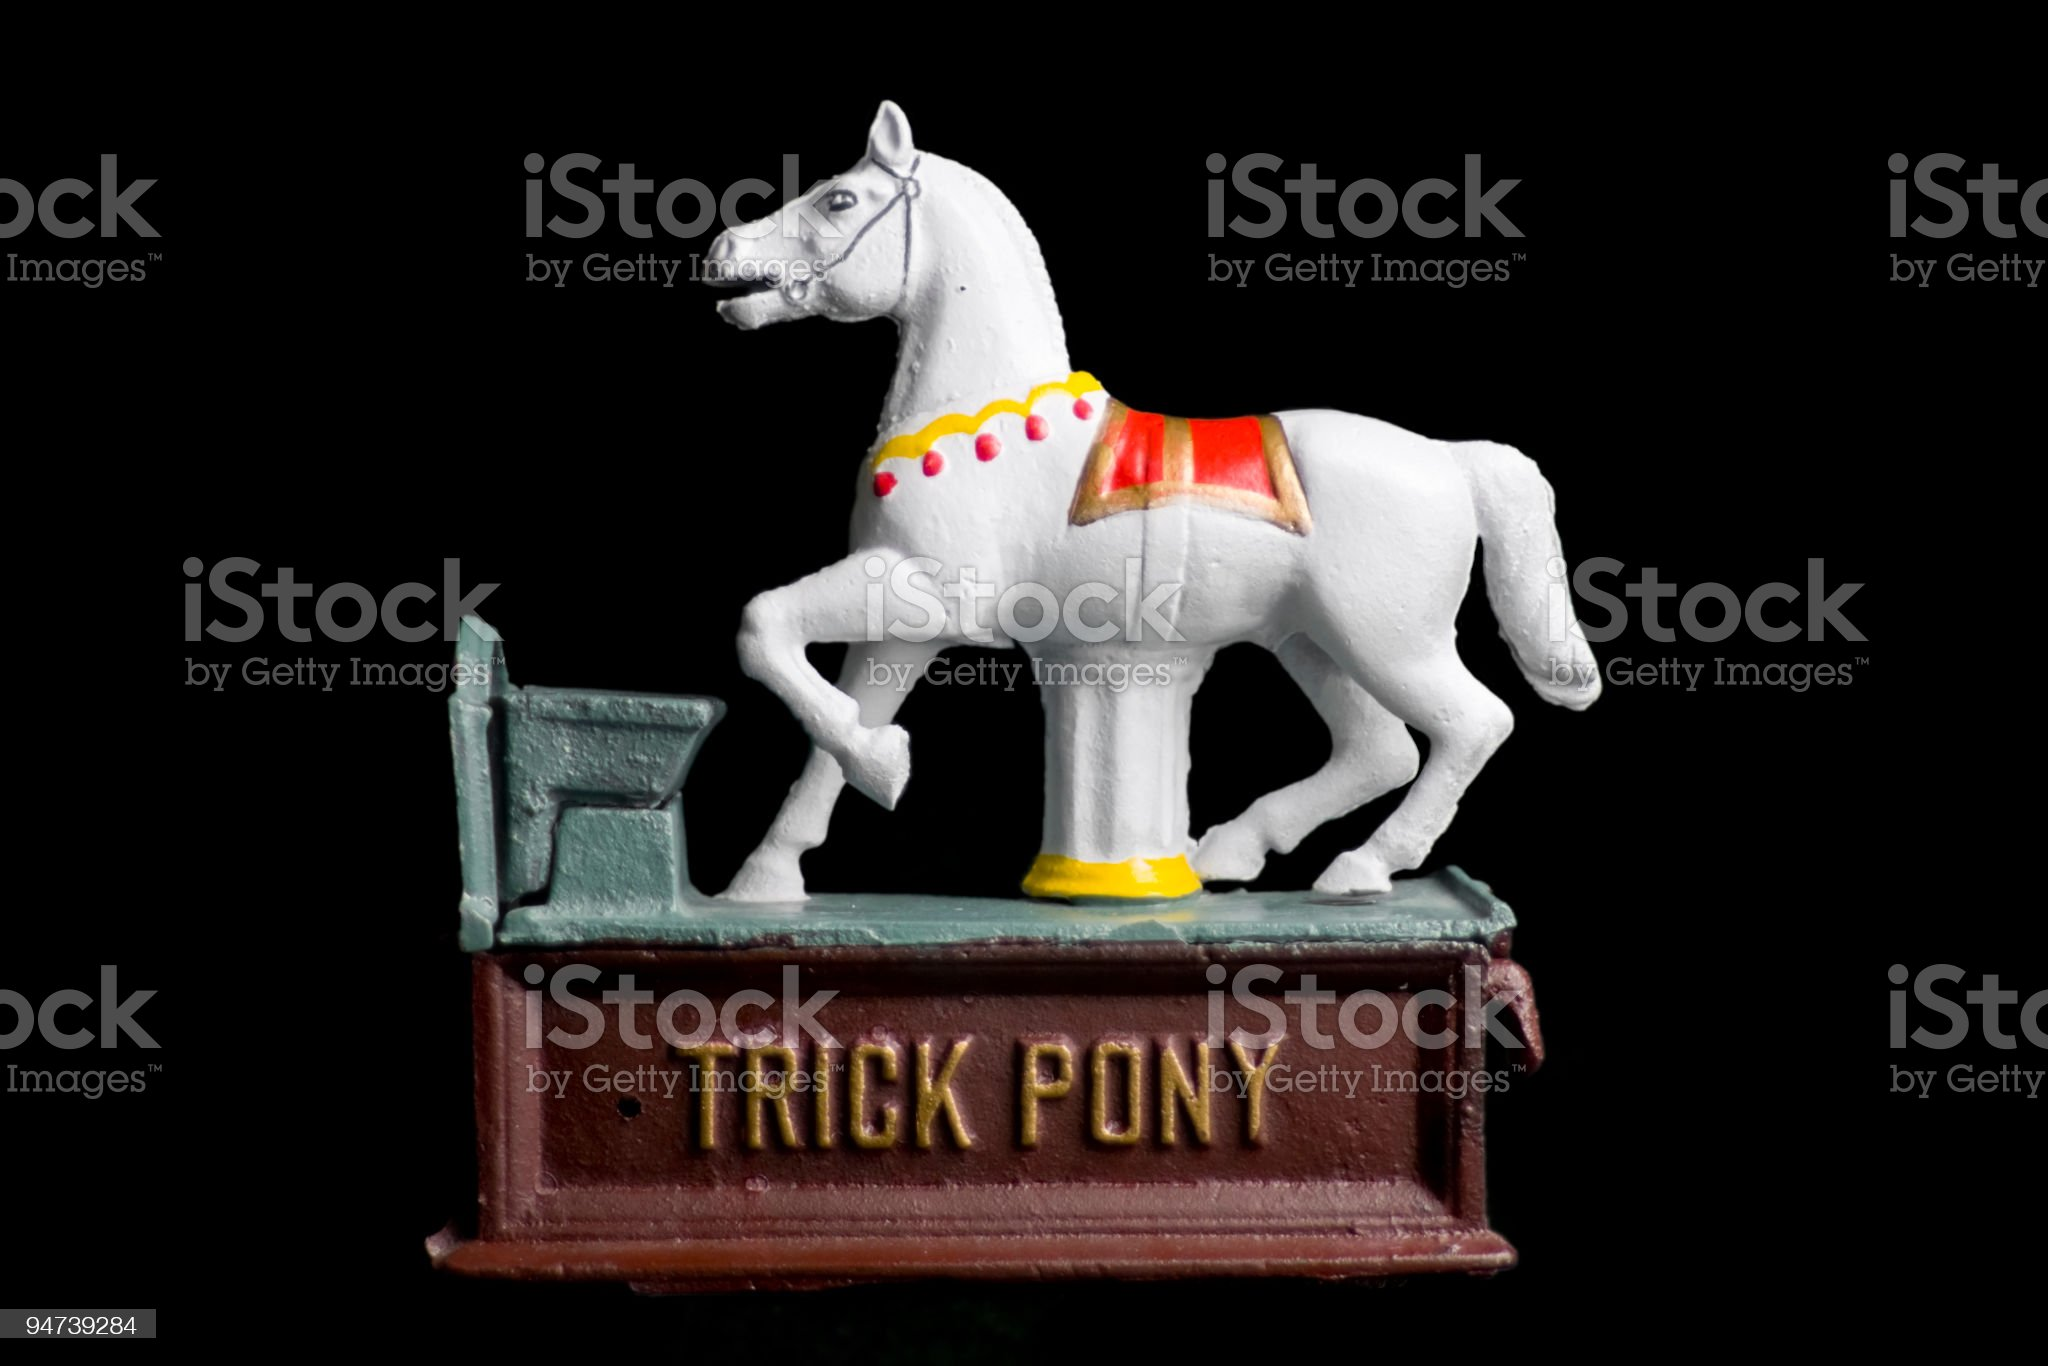 Trick Pony Coin Bank royalty-free stock photo